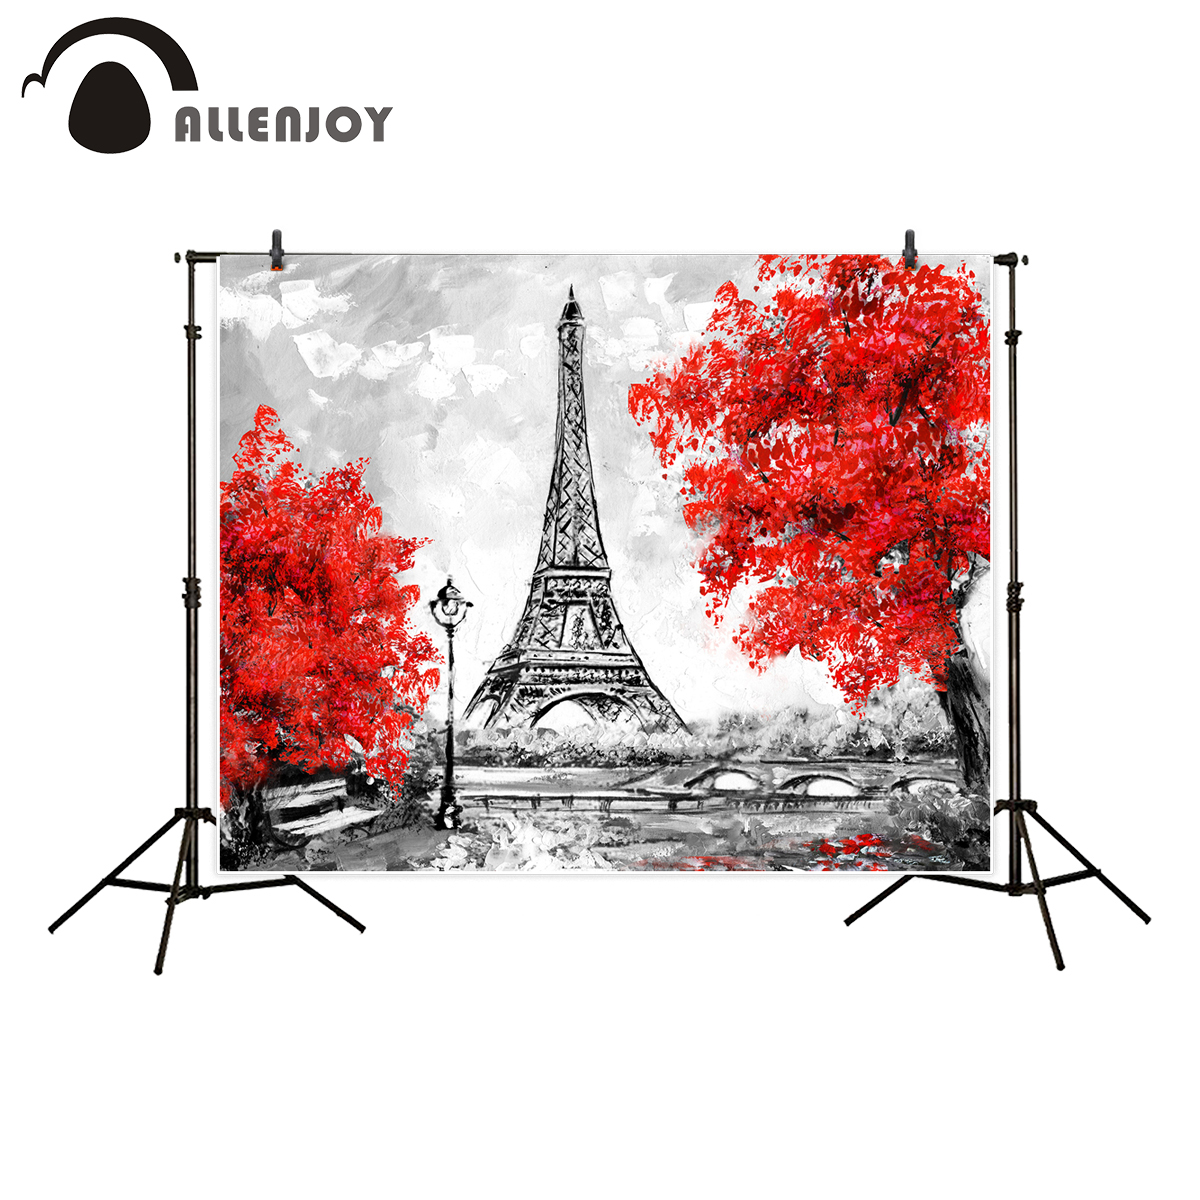 Allenjoy photography backdrop Red tree black white scenery Paris Tower romantic oil painting style background fotografica kate 10ft european oil painting scenery